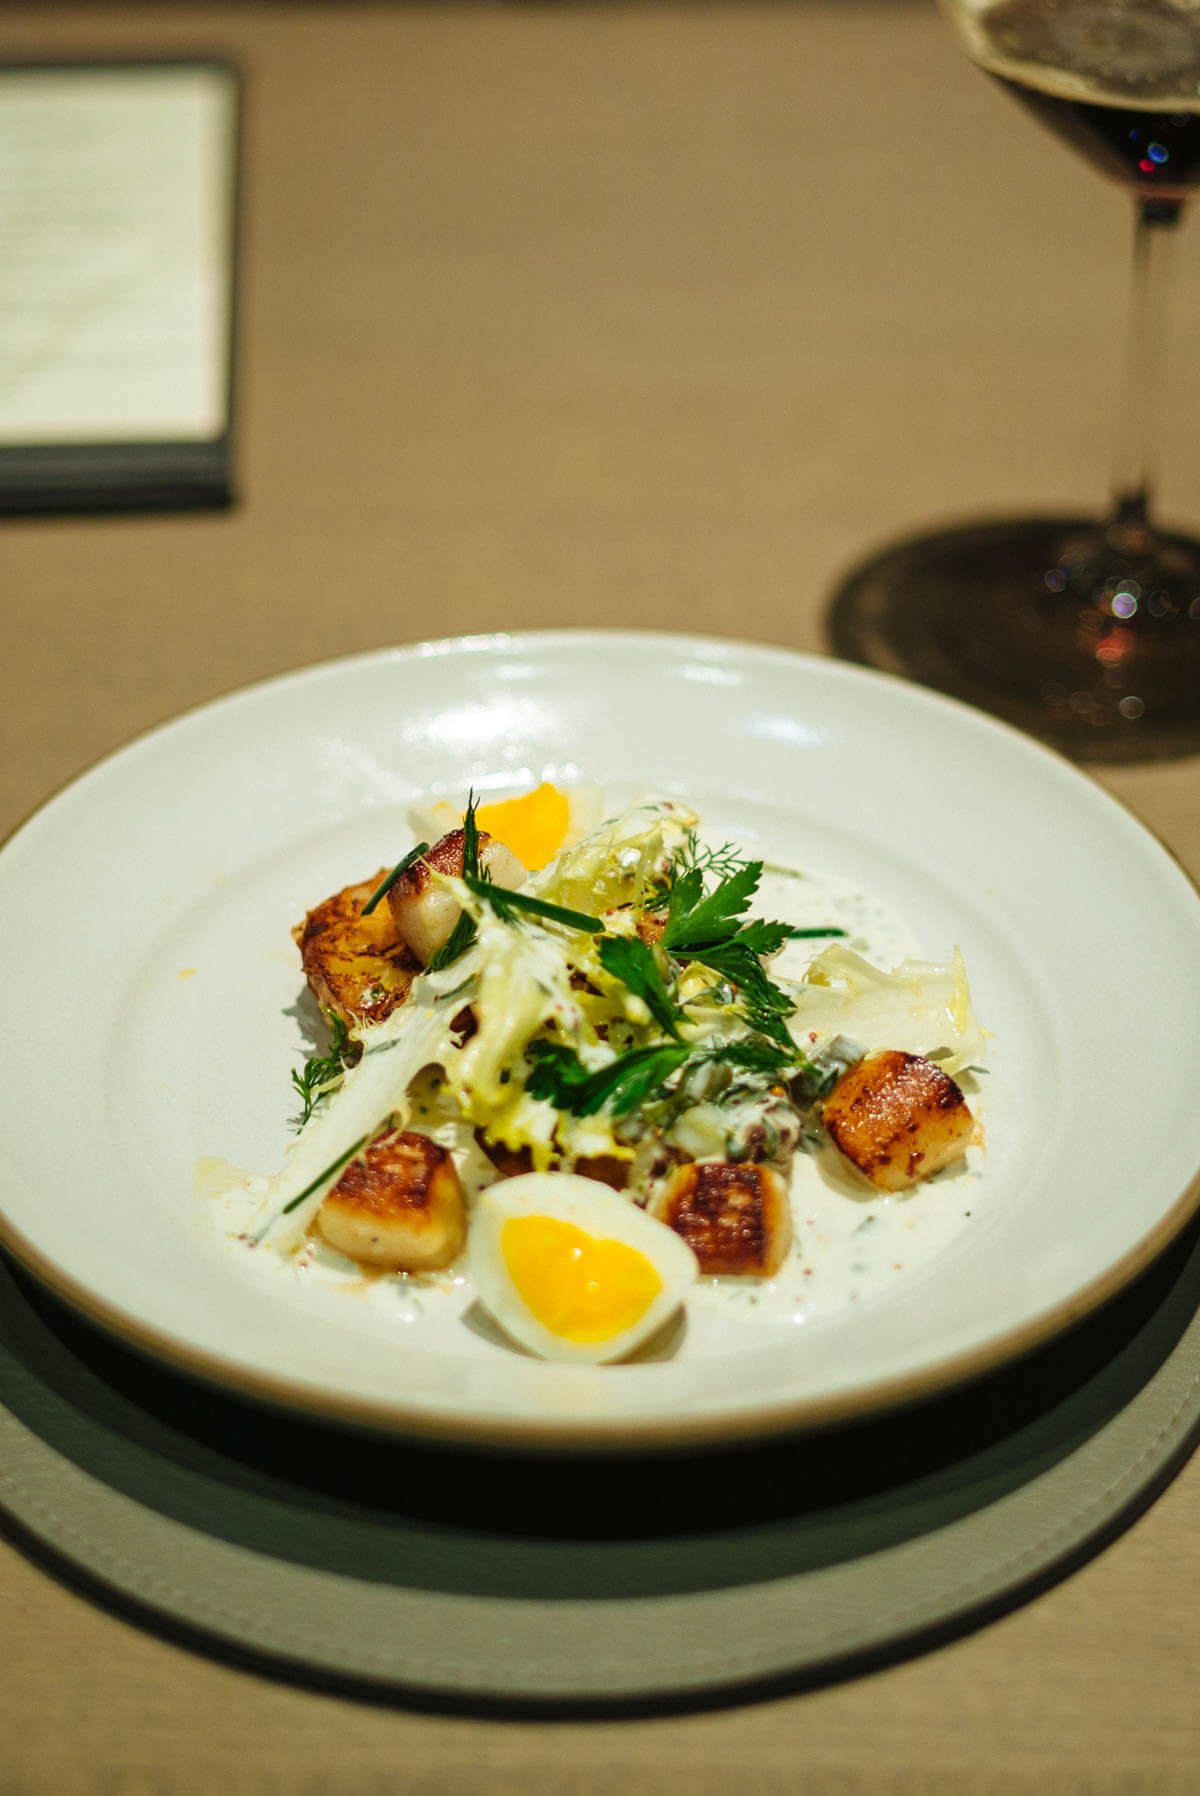 smoked eel and scallops with crispy potatoes from Paul Kahan at Acacia House in Napa Valley The Taste SF